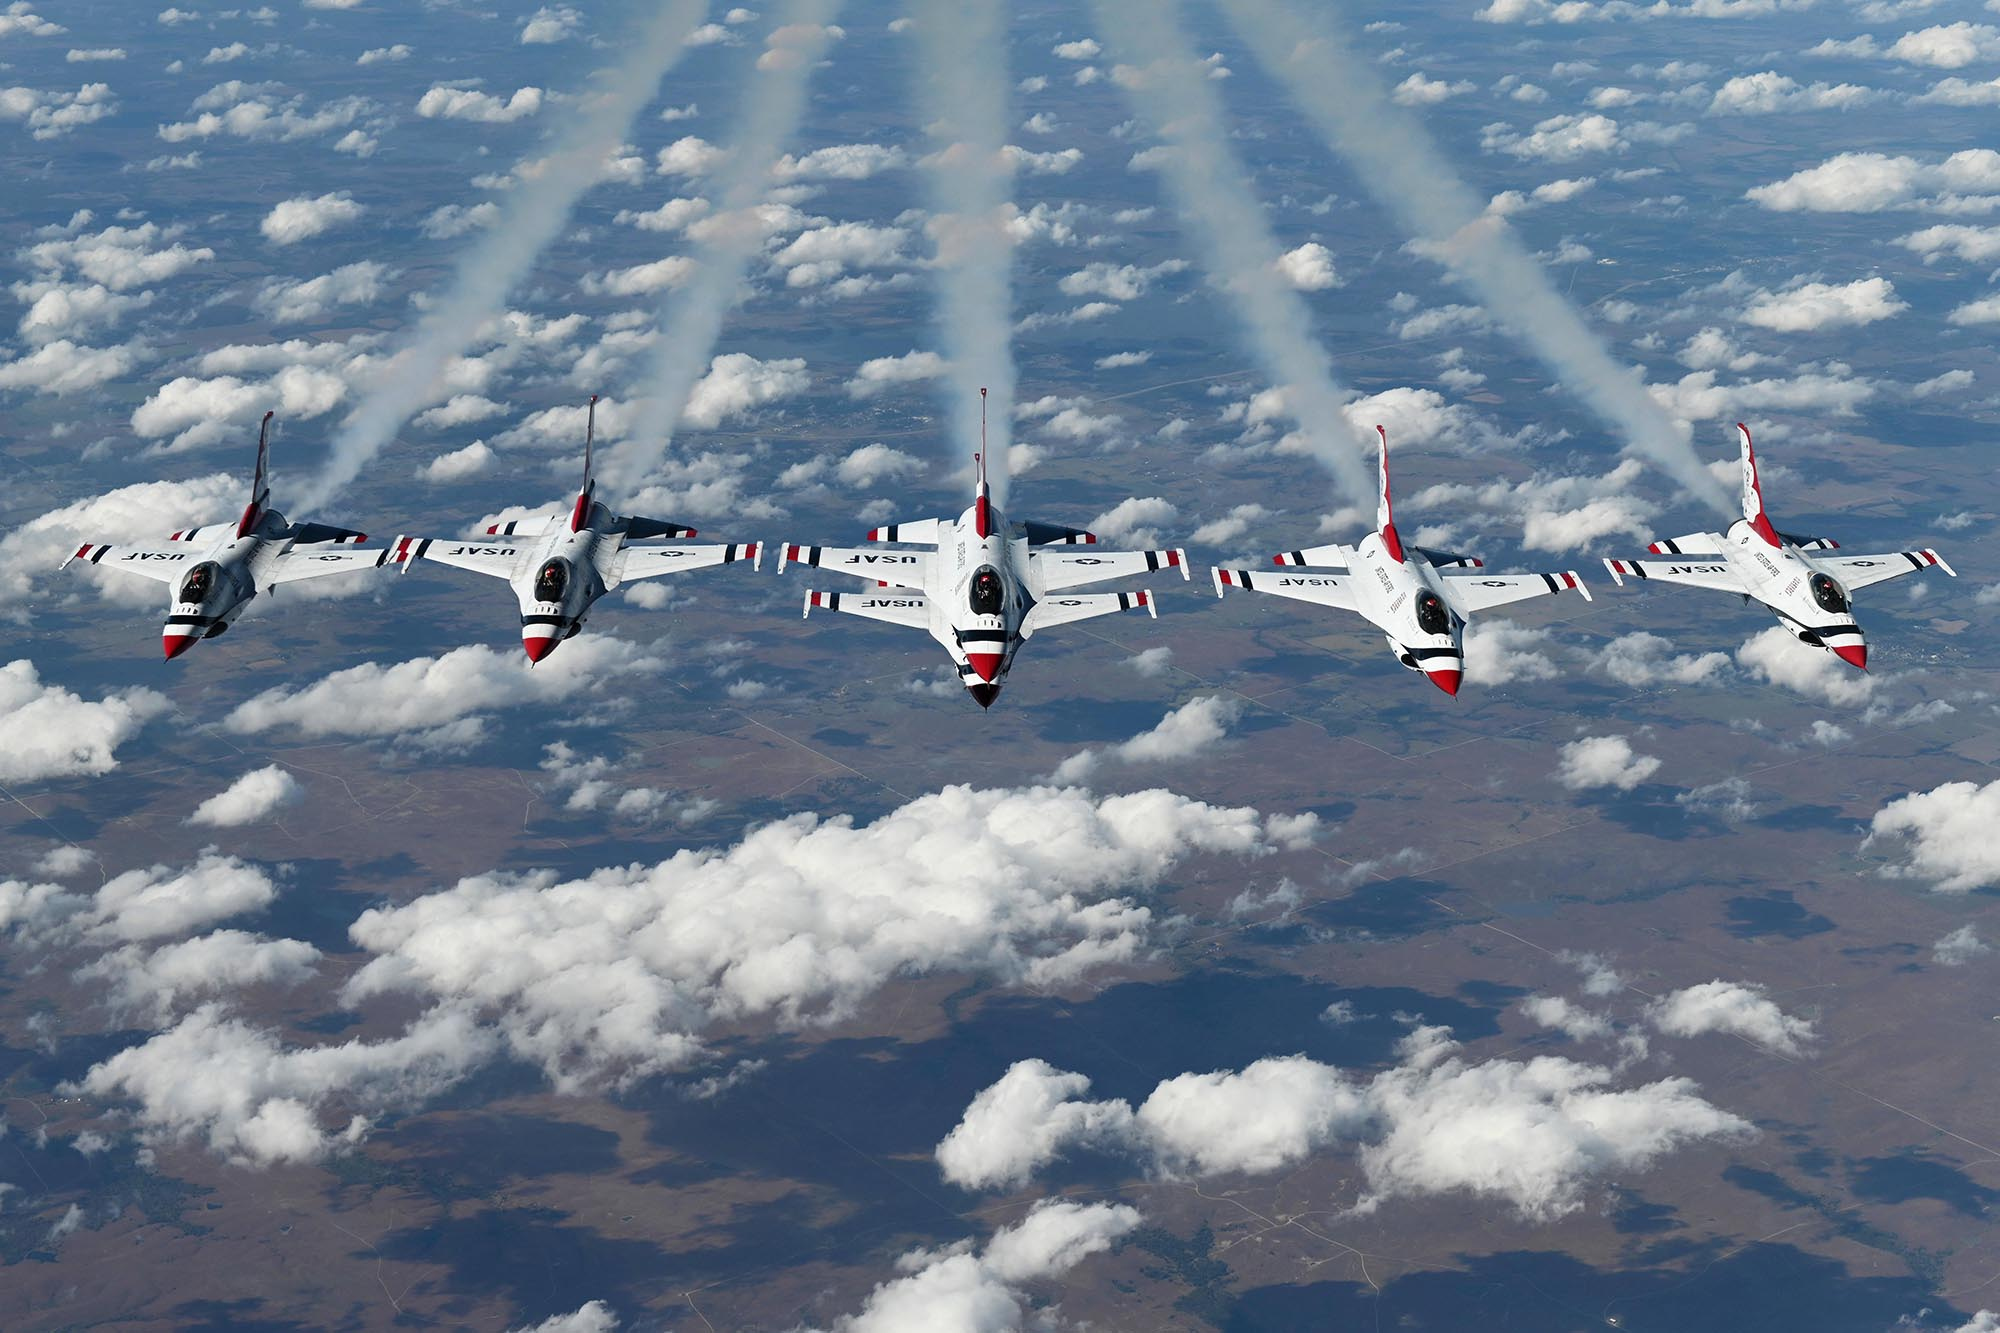 The U.S. Air Force Thunderbirds perform a six-ship formation under a KC-10 Extender, Oct. 22, 2020, over Oklahoma. (Senior Airman Jonathon Carnell/Air Force)